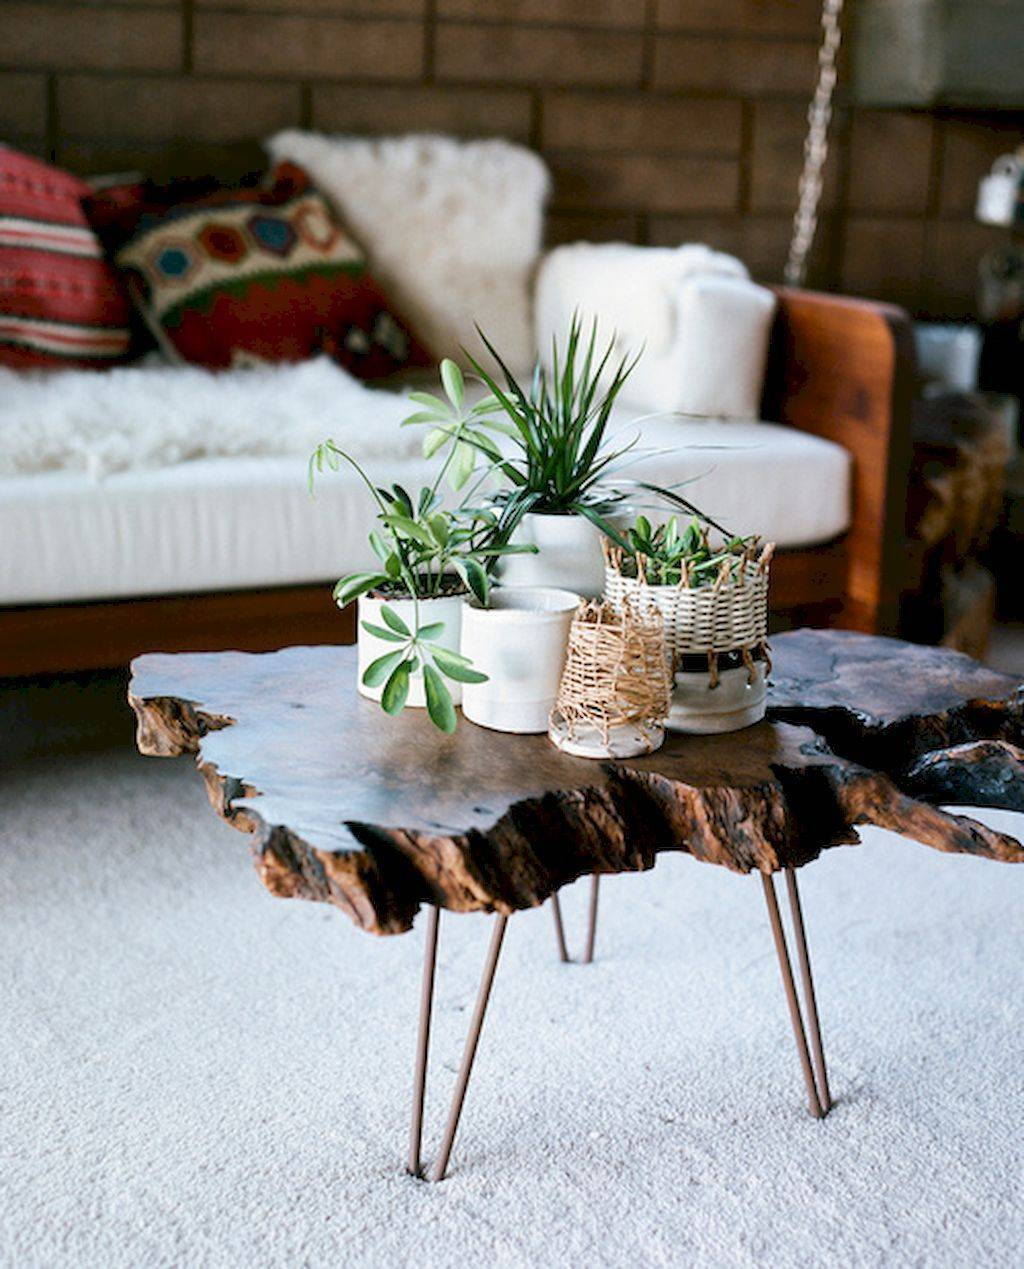 Bring outdoor home decor inside with plants woodwork, and hand crafted materials